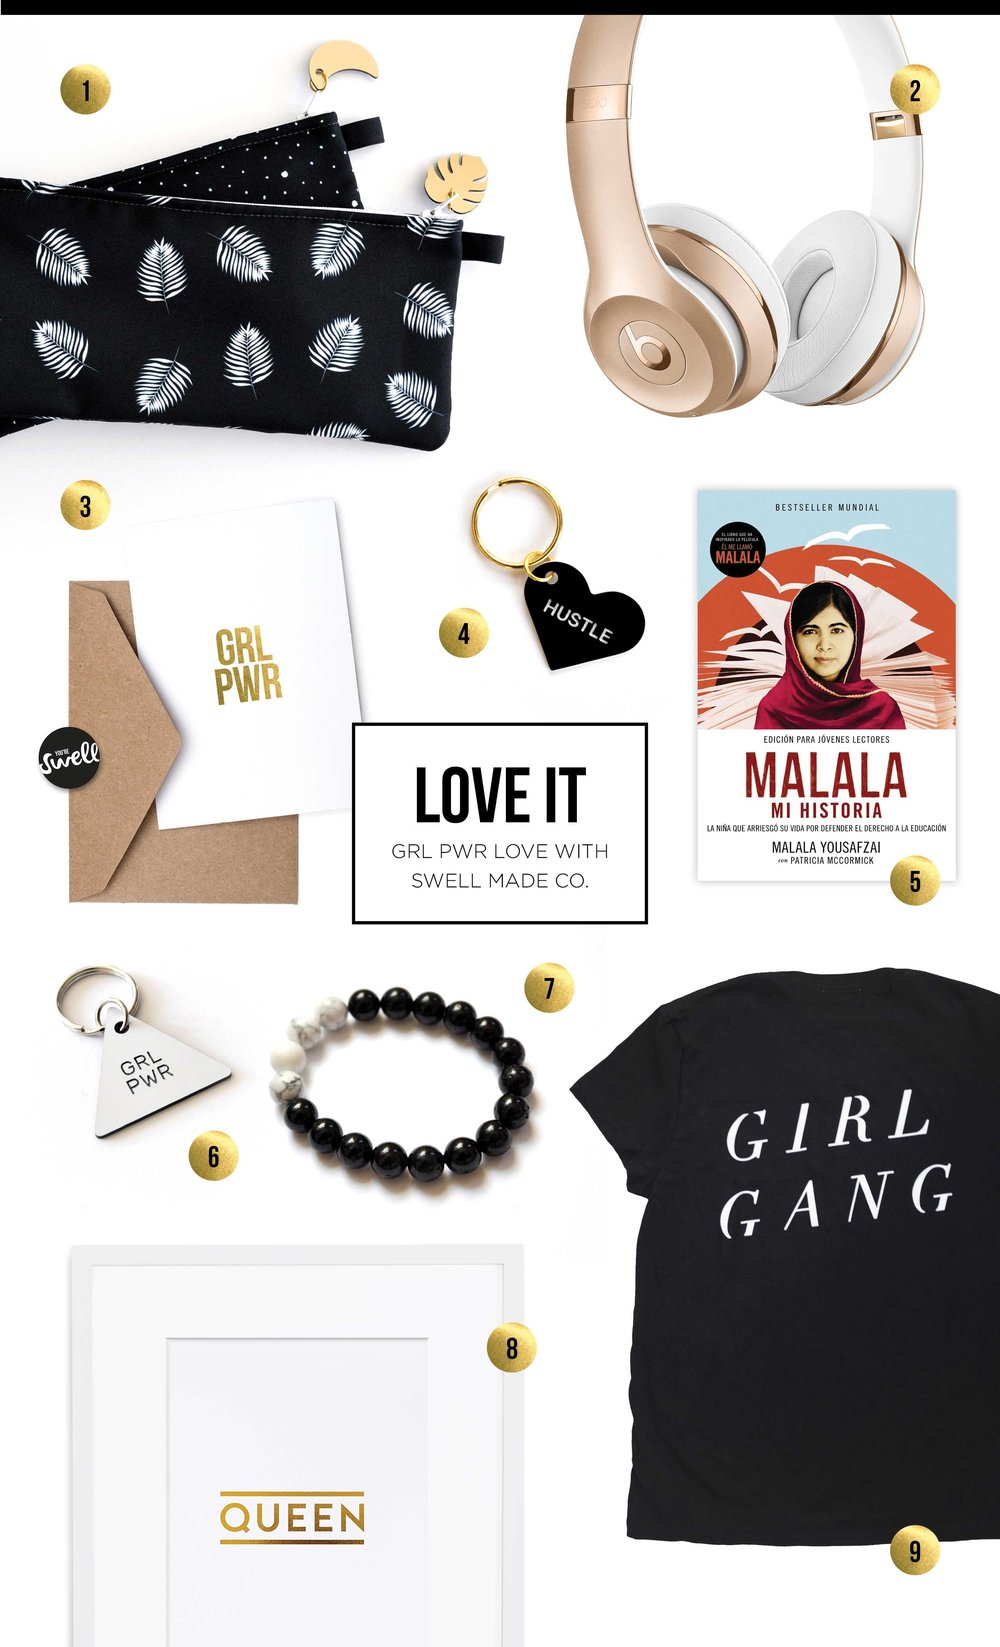 LOVE IT | Girl Power Love with Swell Made Co.